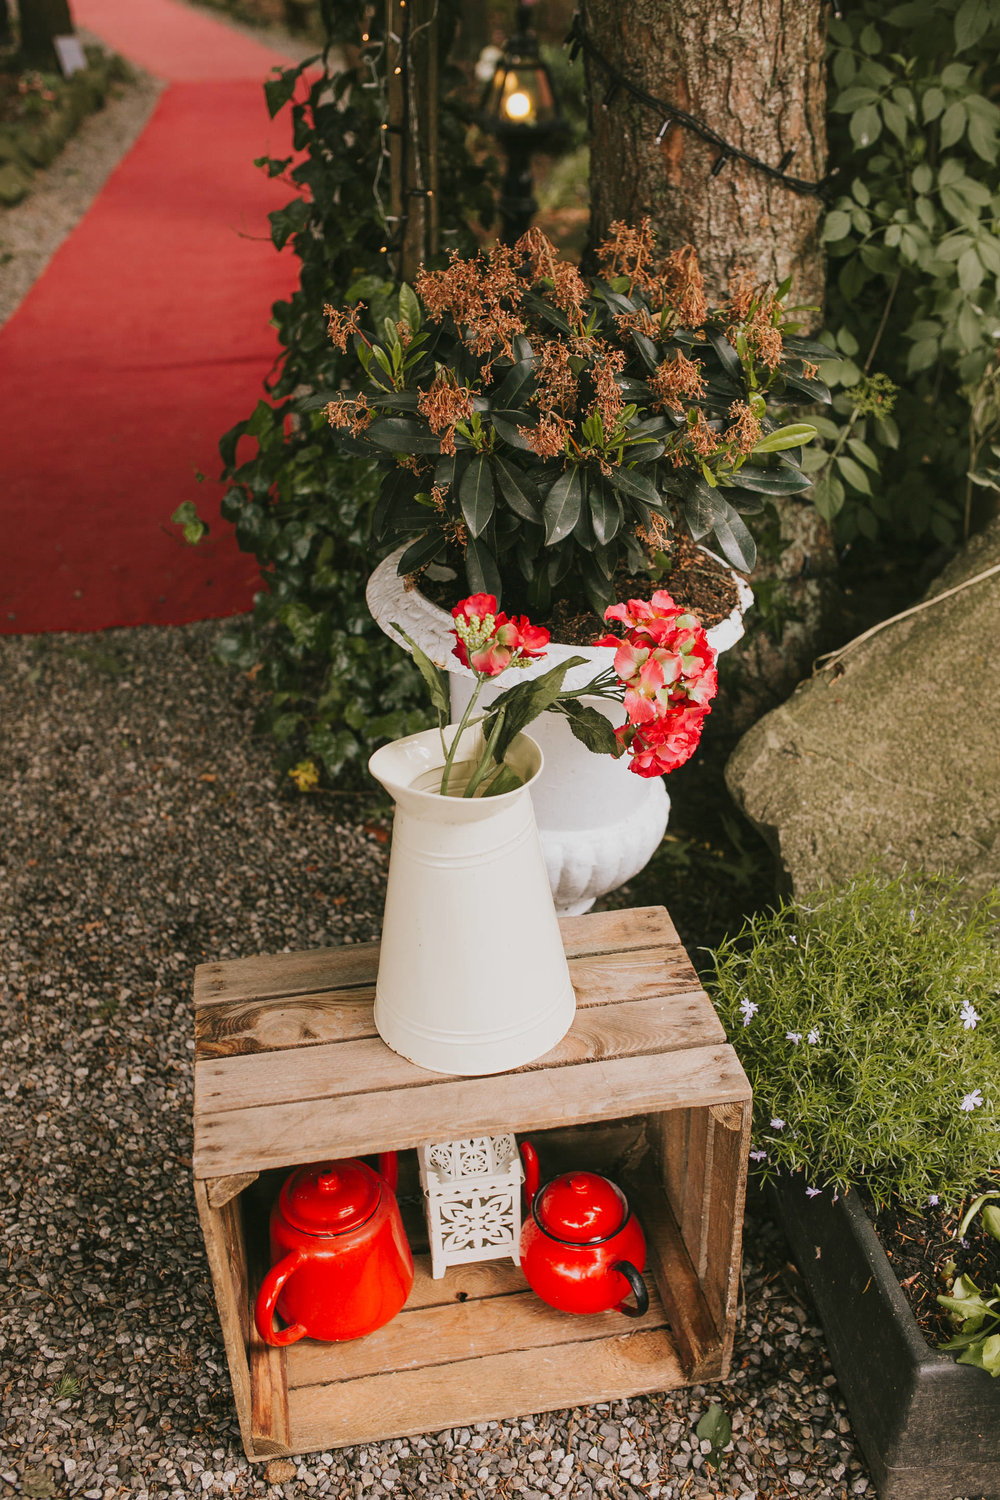 station_house_wedding_fair_liviafigueiredo_17.jpg